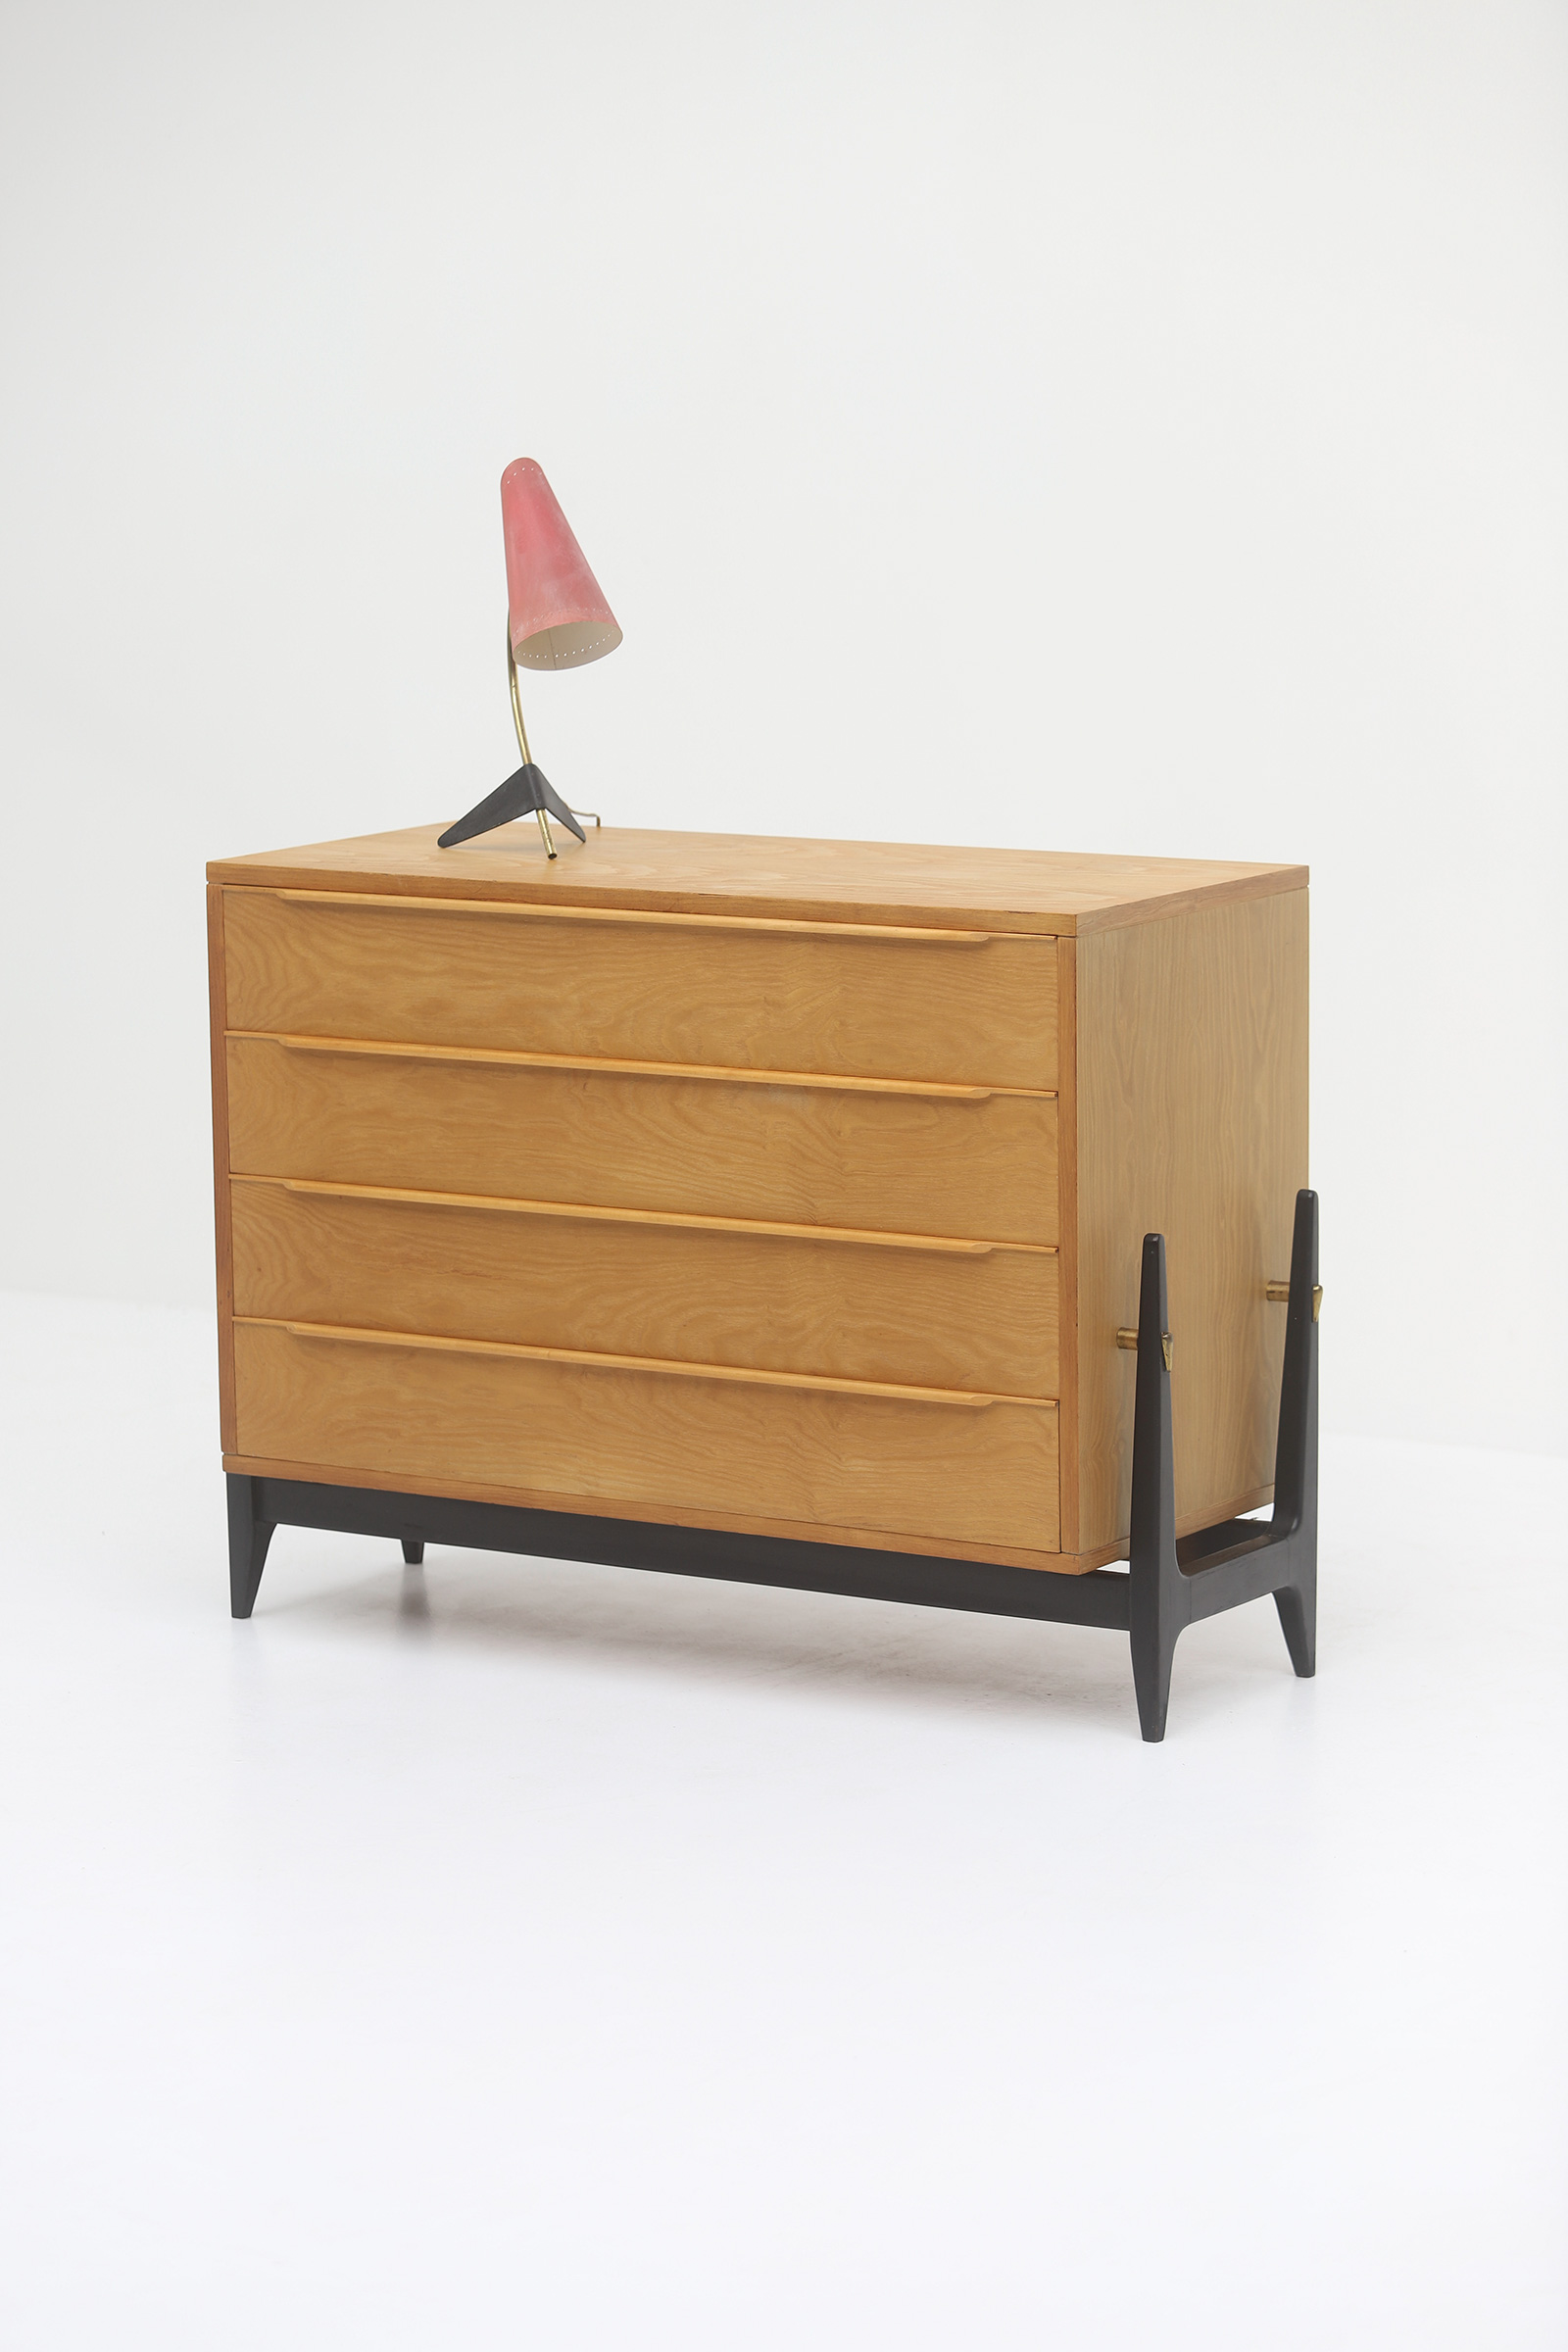 Elegant commode with drawers, 1950simage 10